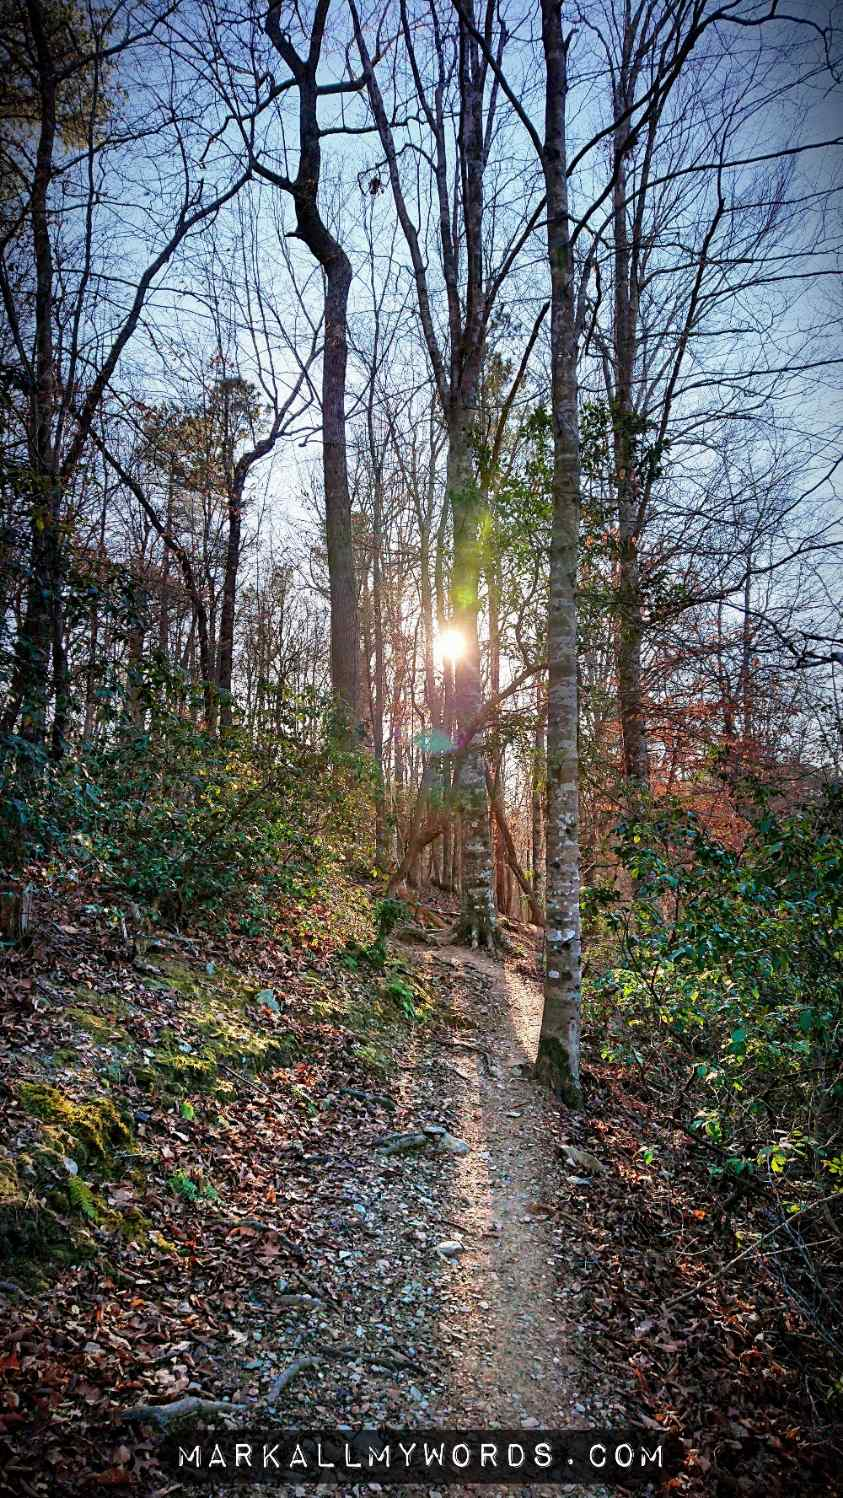 Burst of sunlight through branches on trail